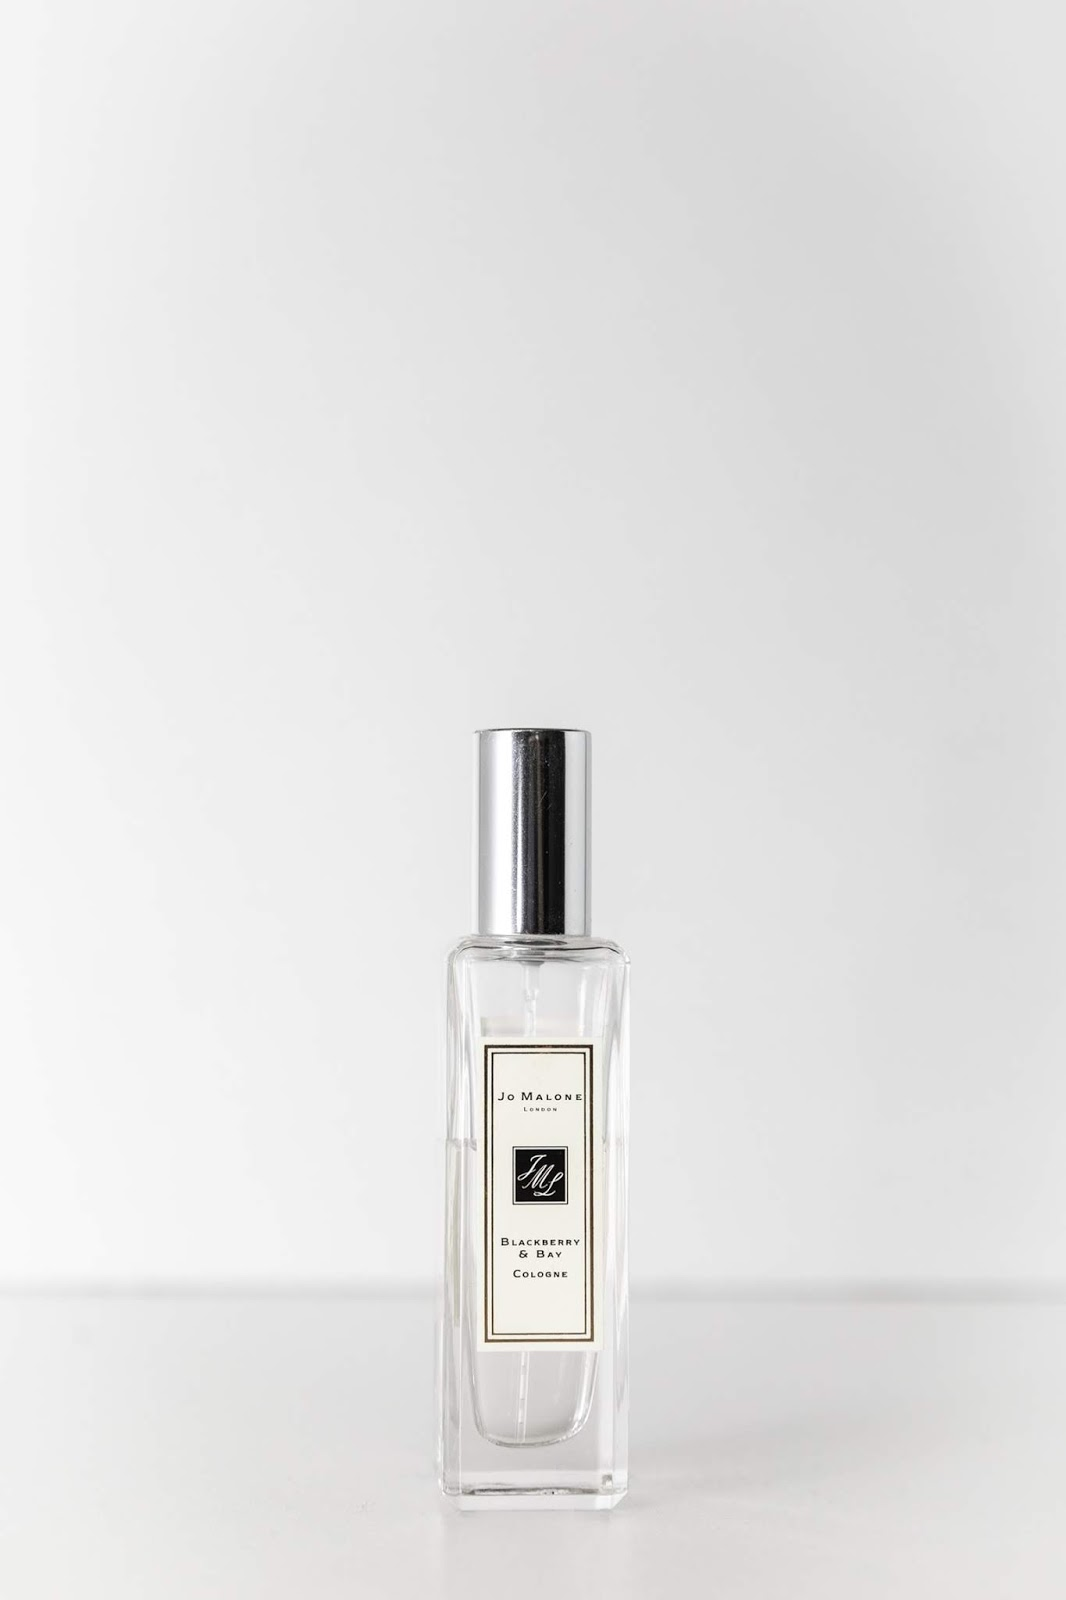 a bottle of jo malone perfume on white background